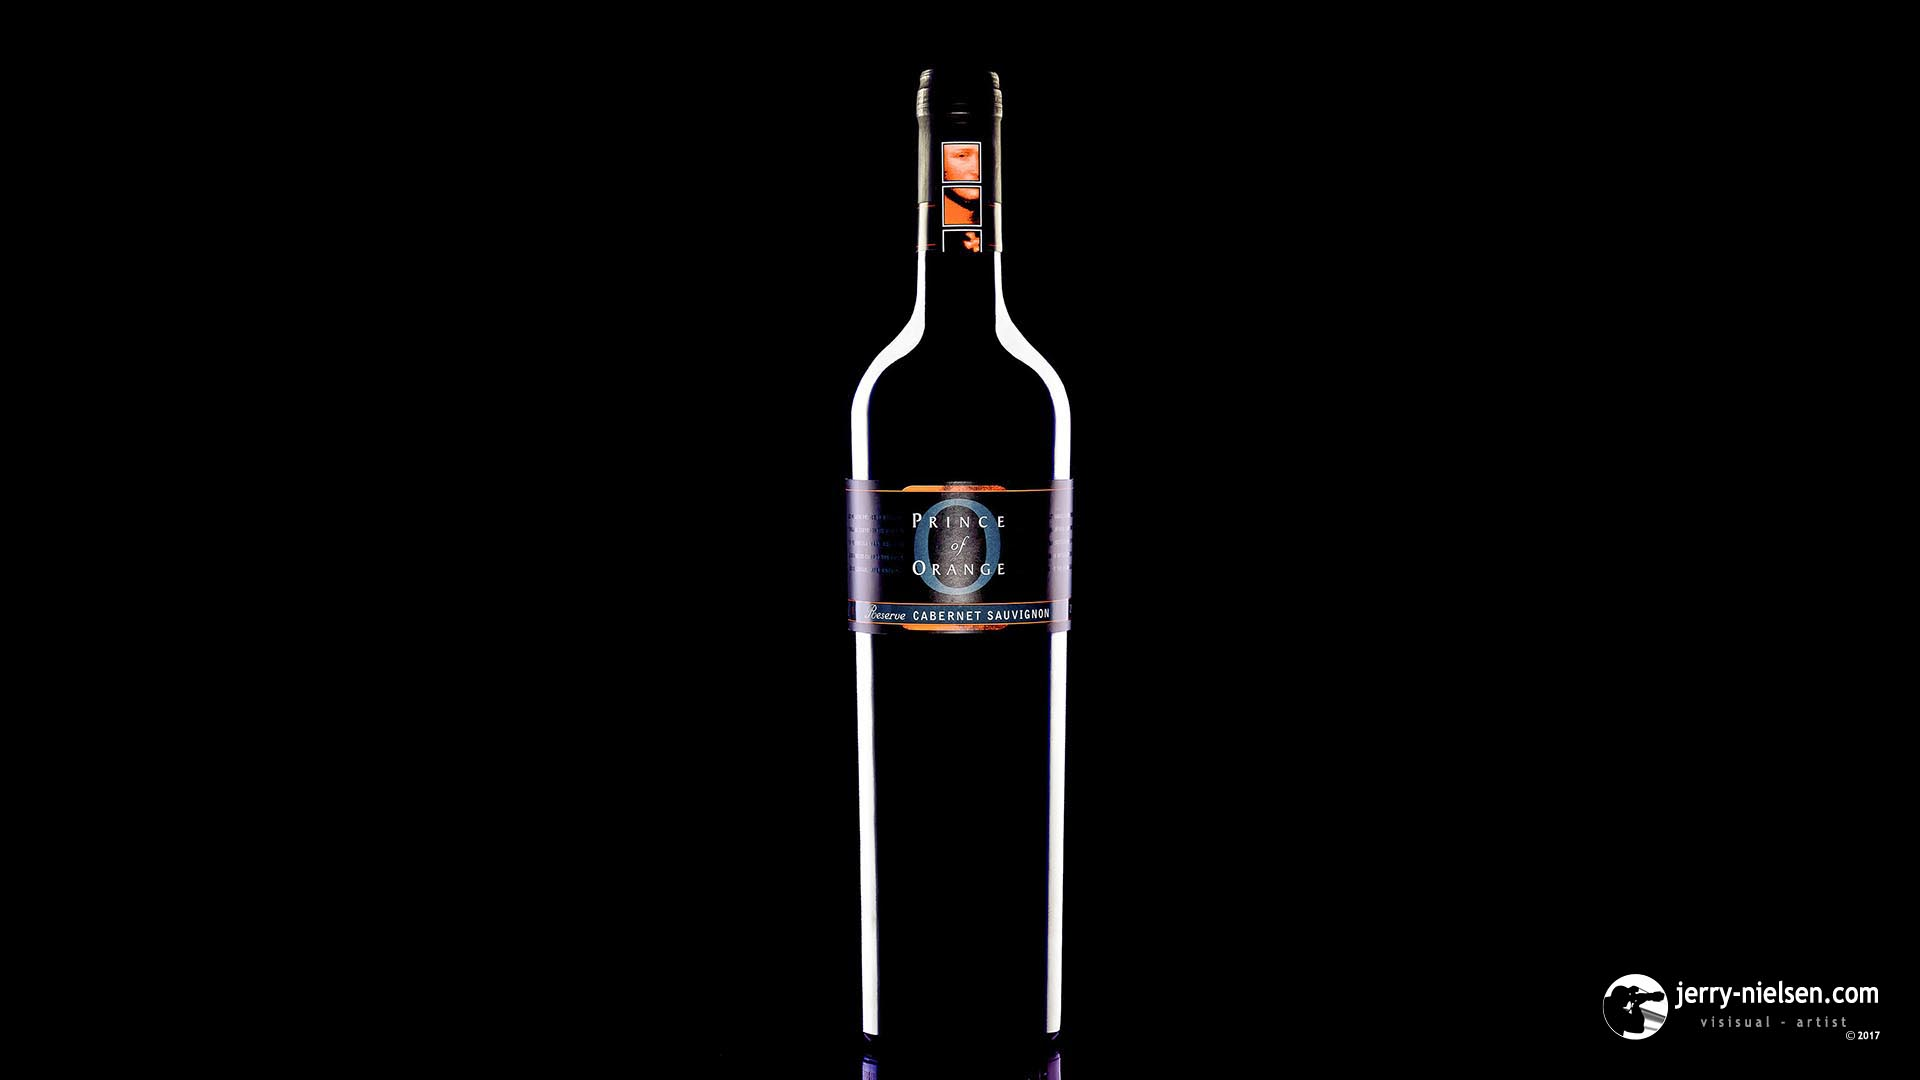 Prince of Orange, Red Wine Bottle